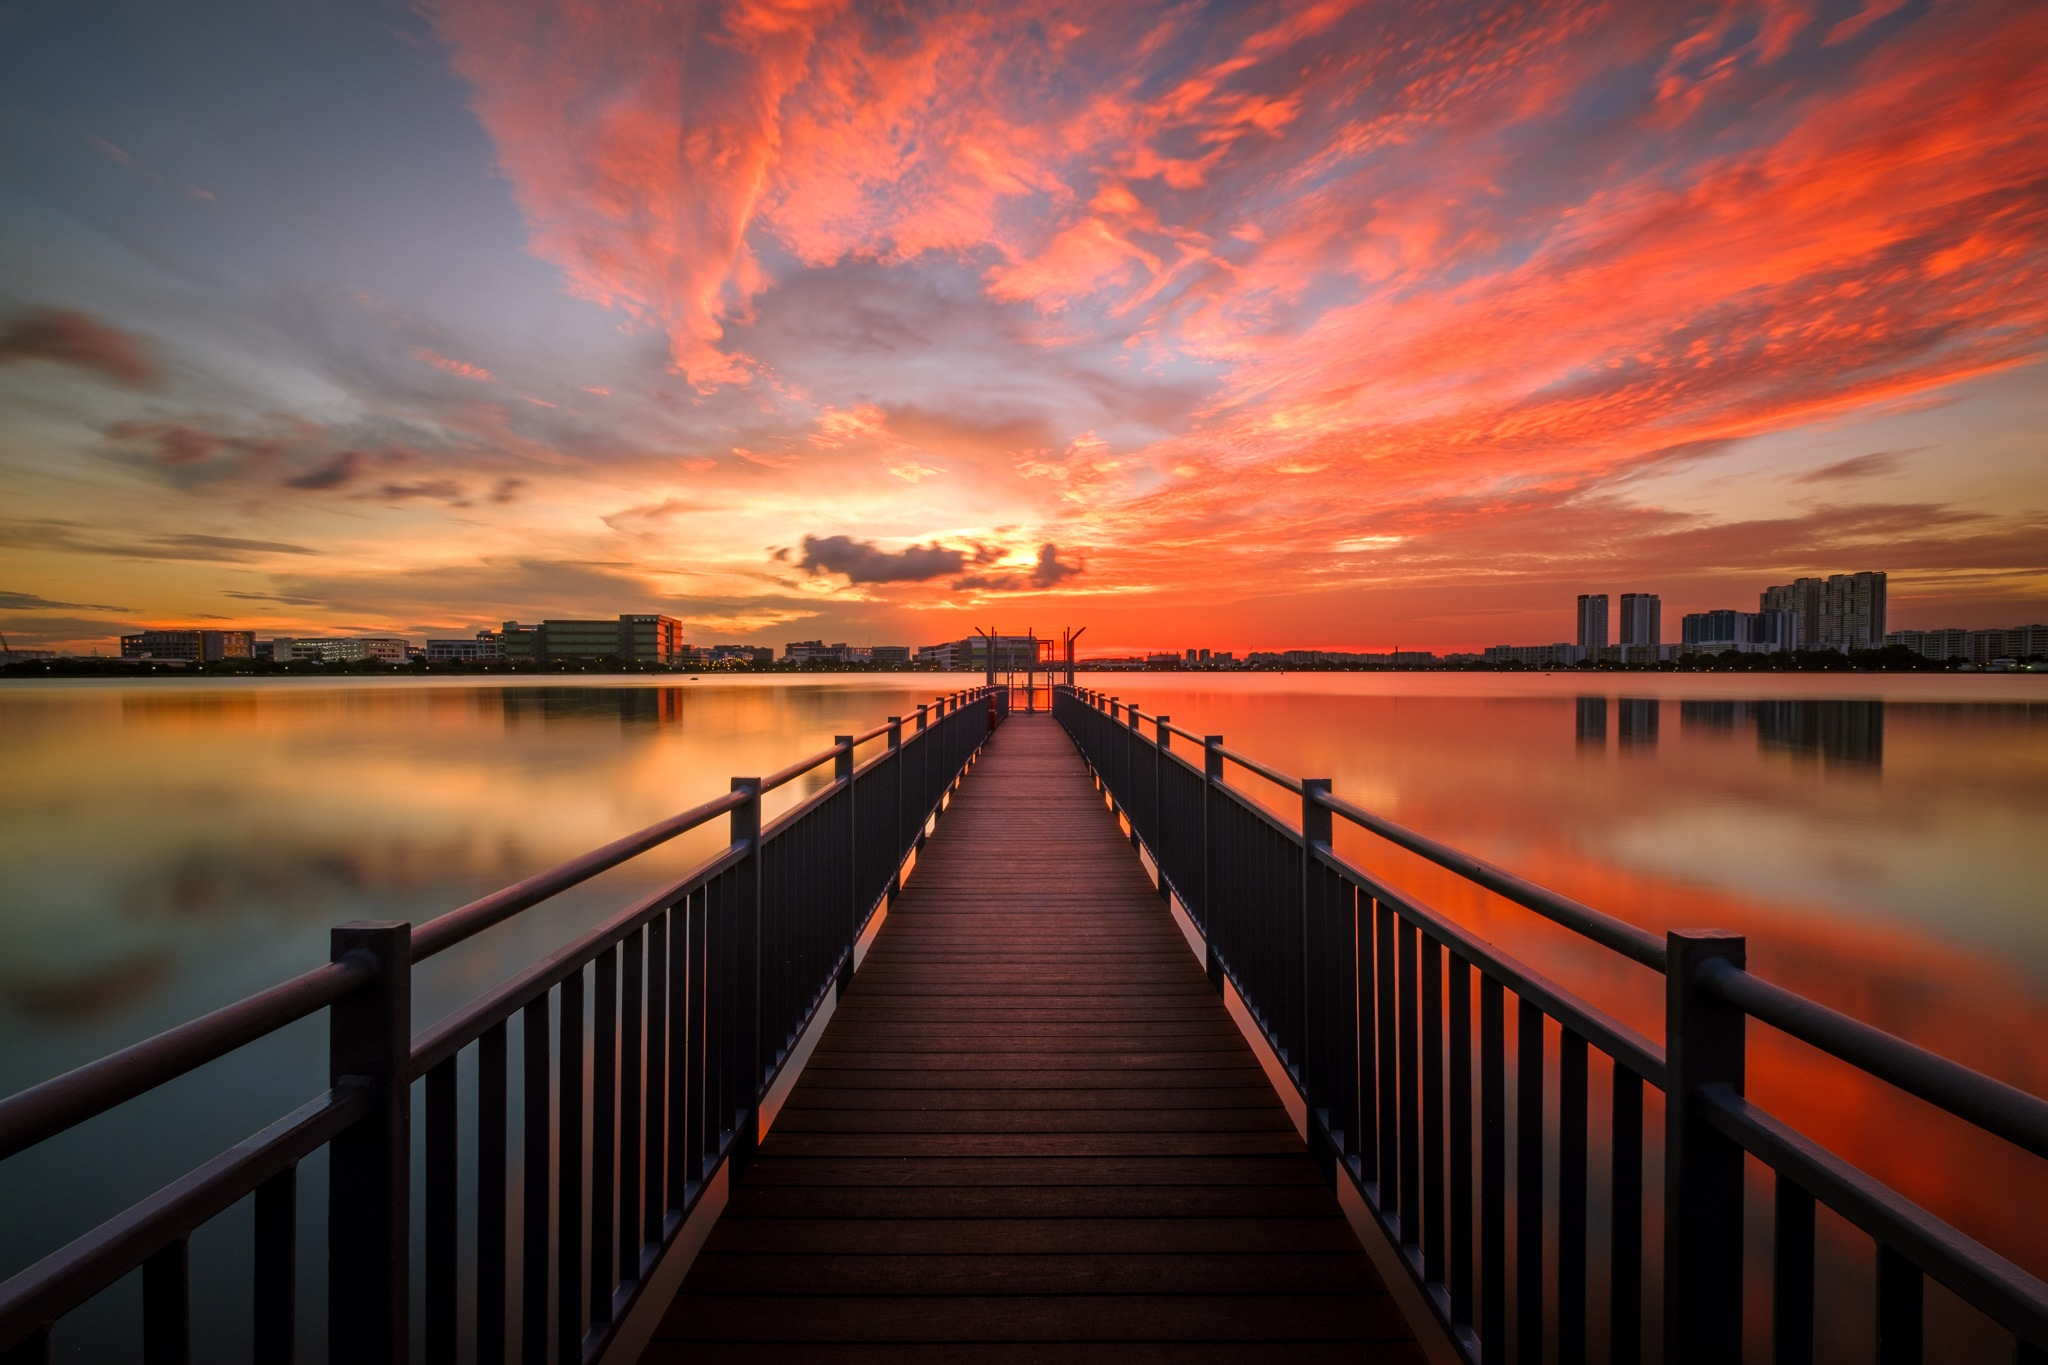 Epic Sky by chyeguantan